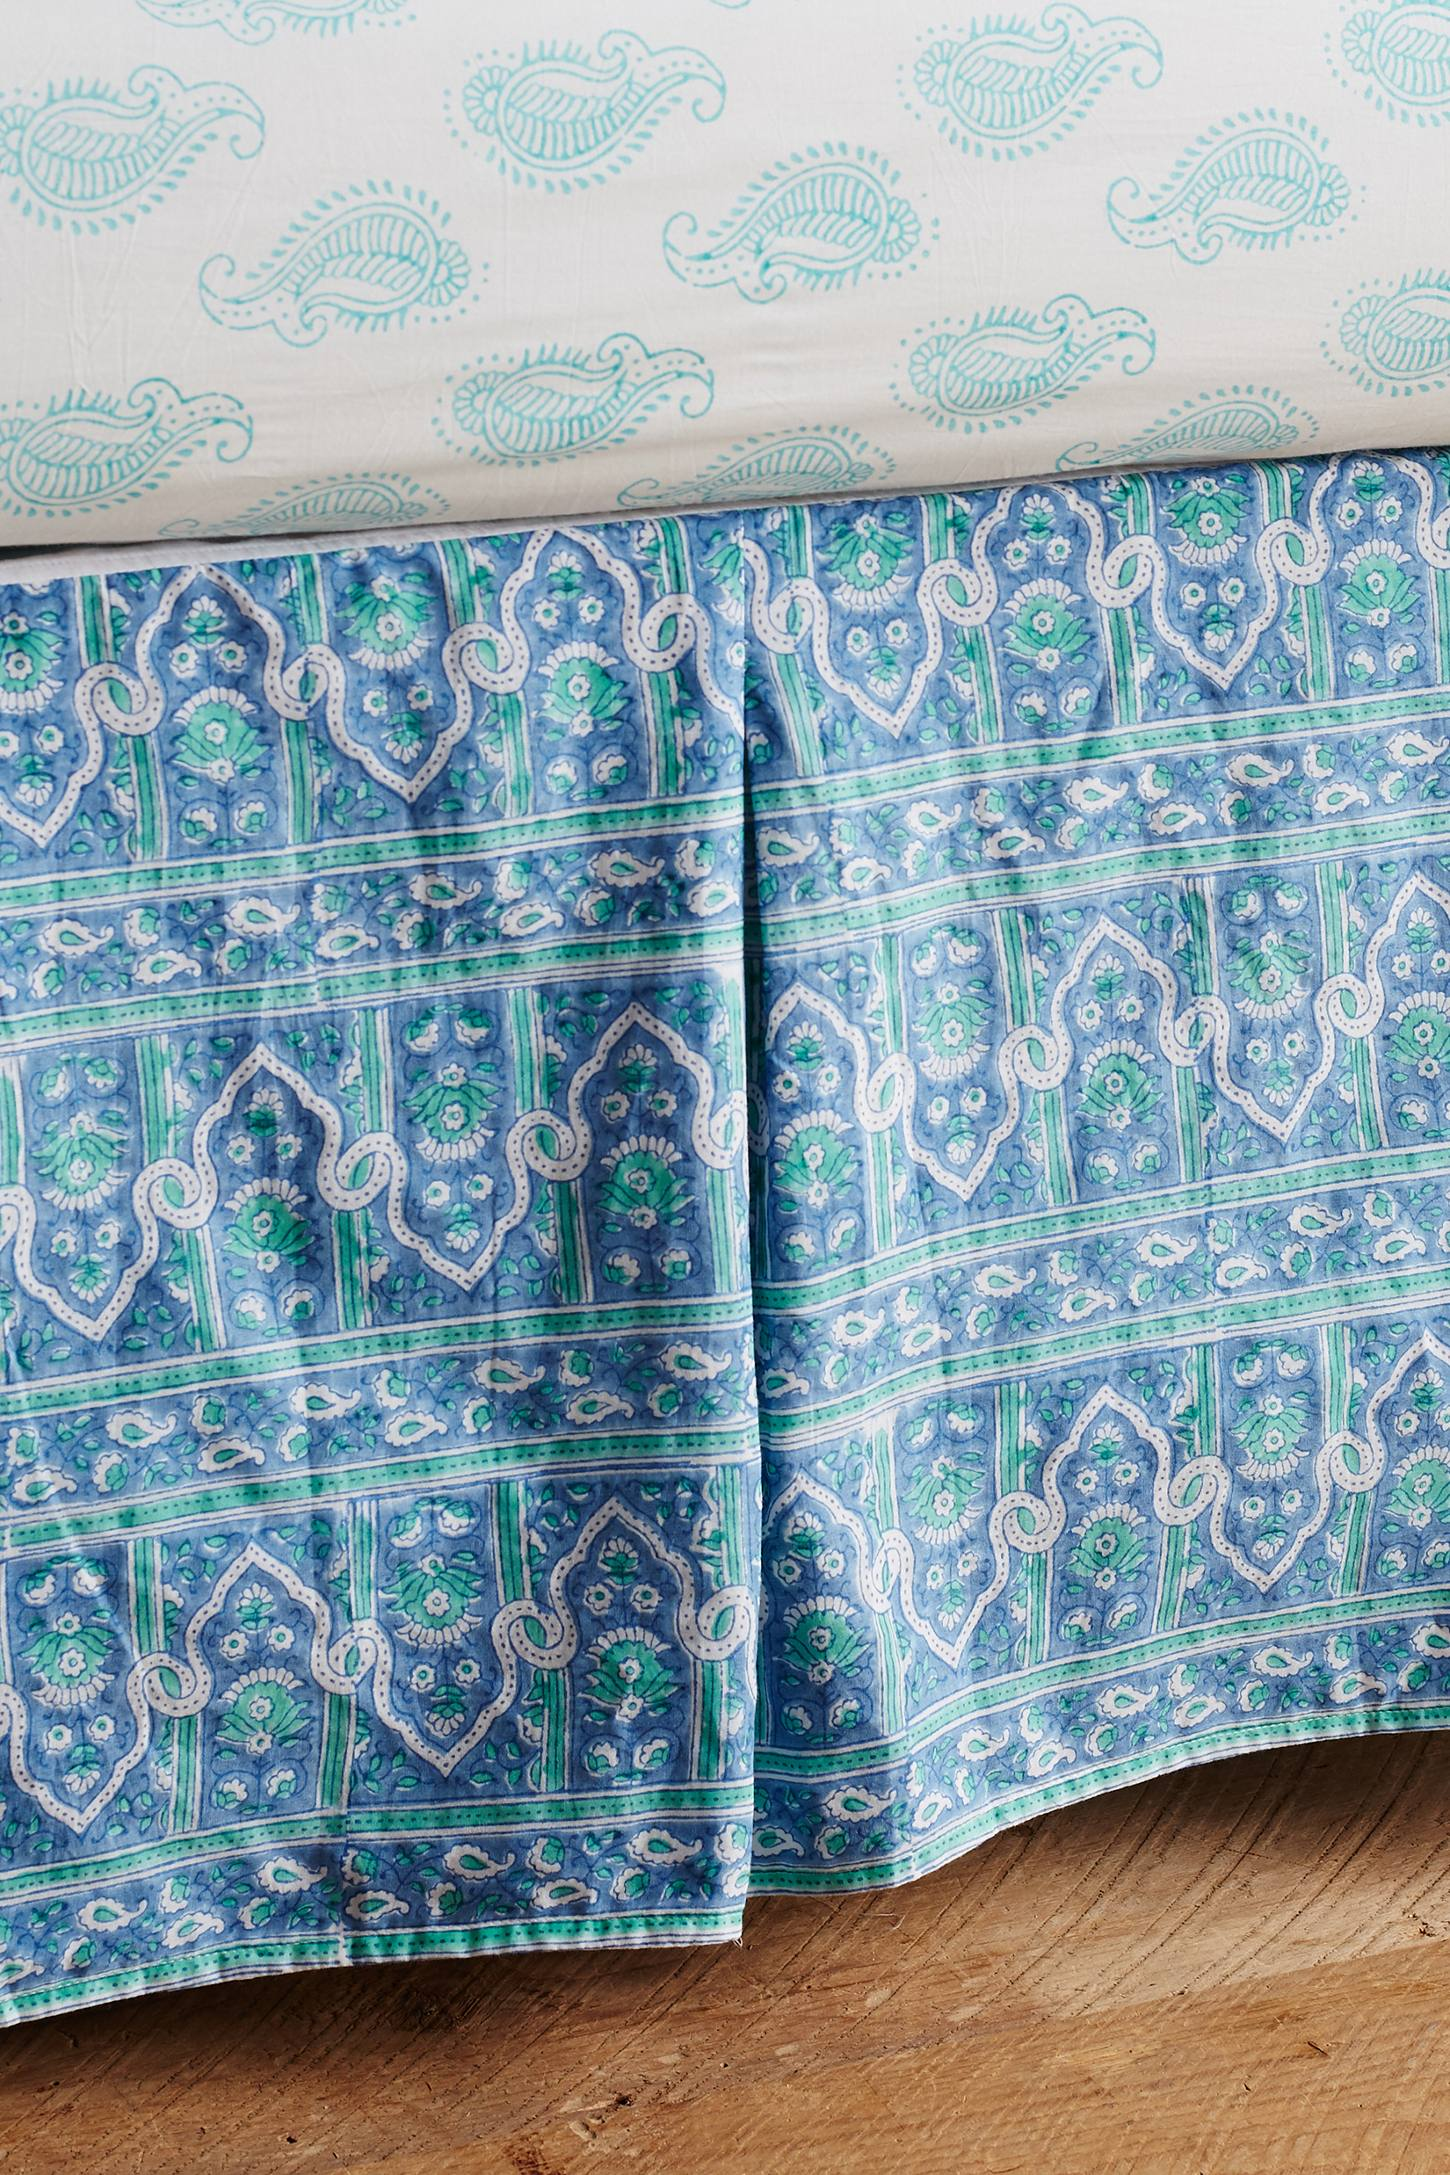 Eastern Skyline Crib Skirt